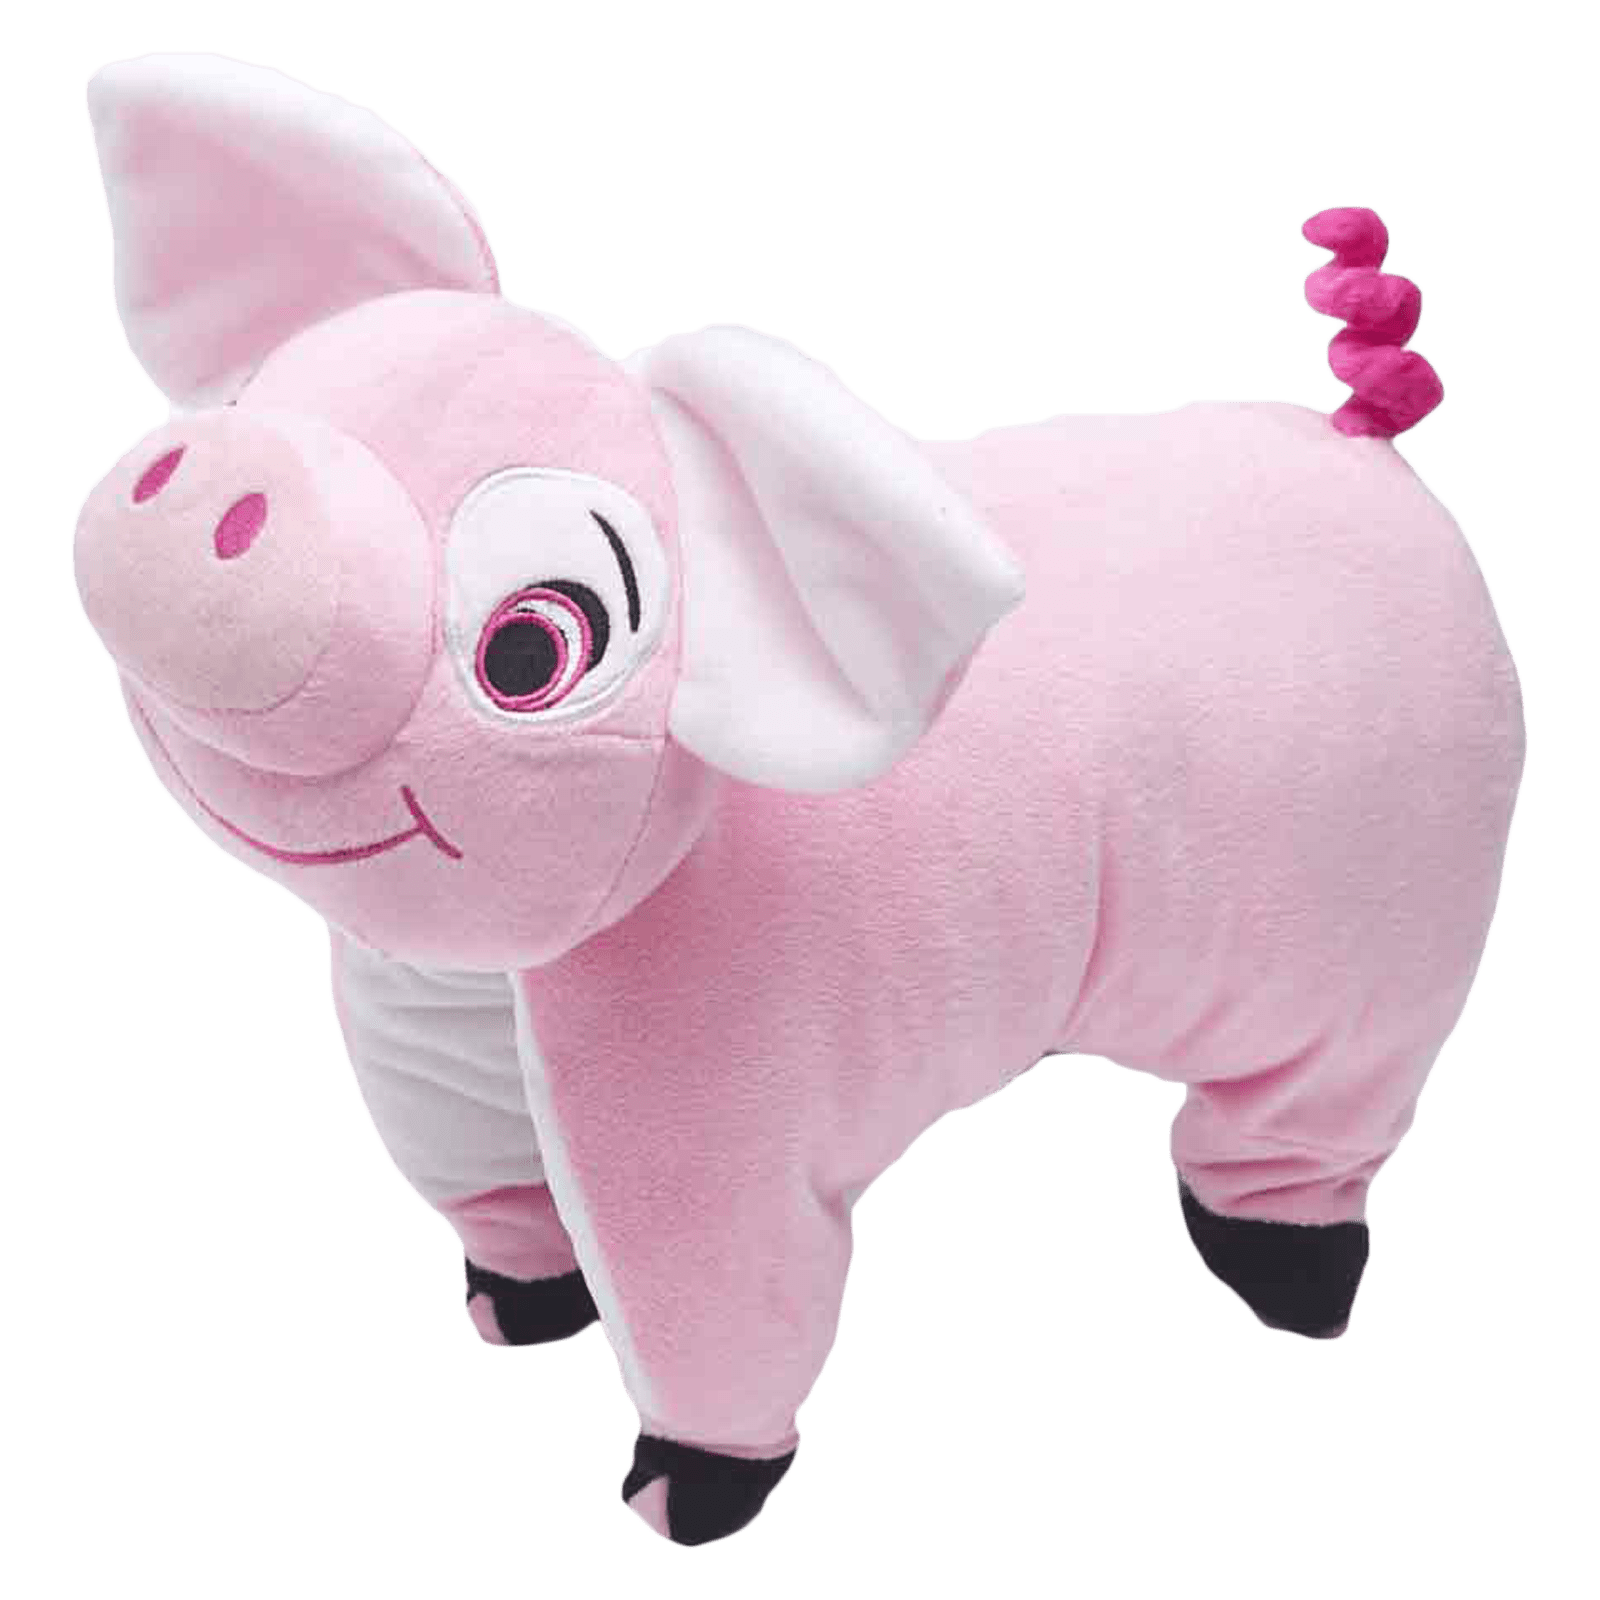 Travel Blue Pinky The Pig Polyester Neck Pillow (Soft and Comfortable, Multicolor)